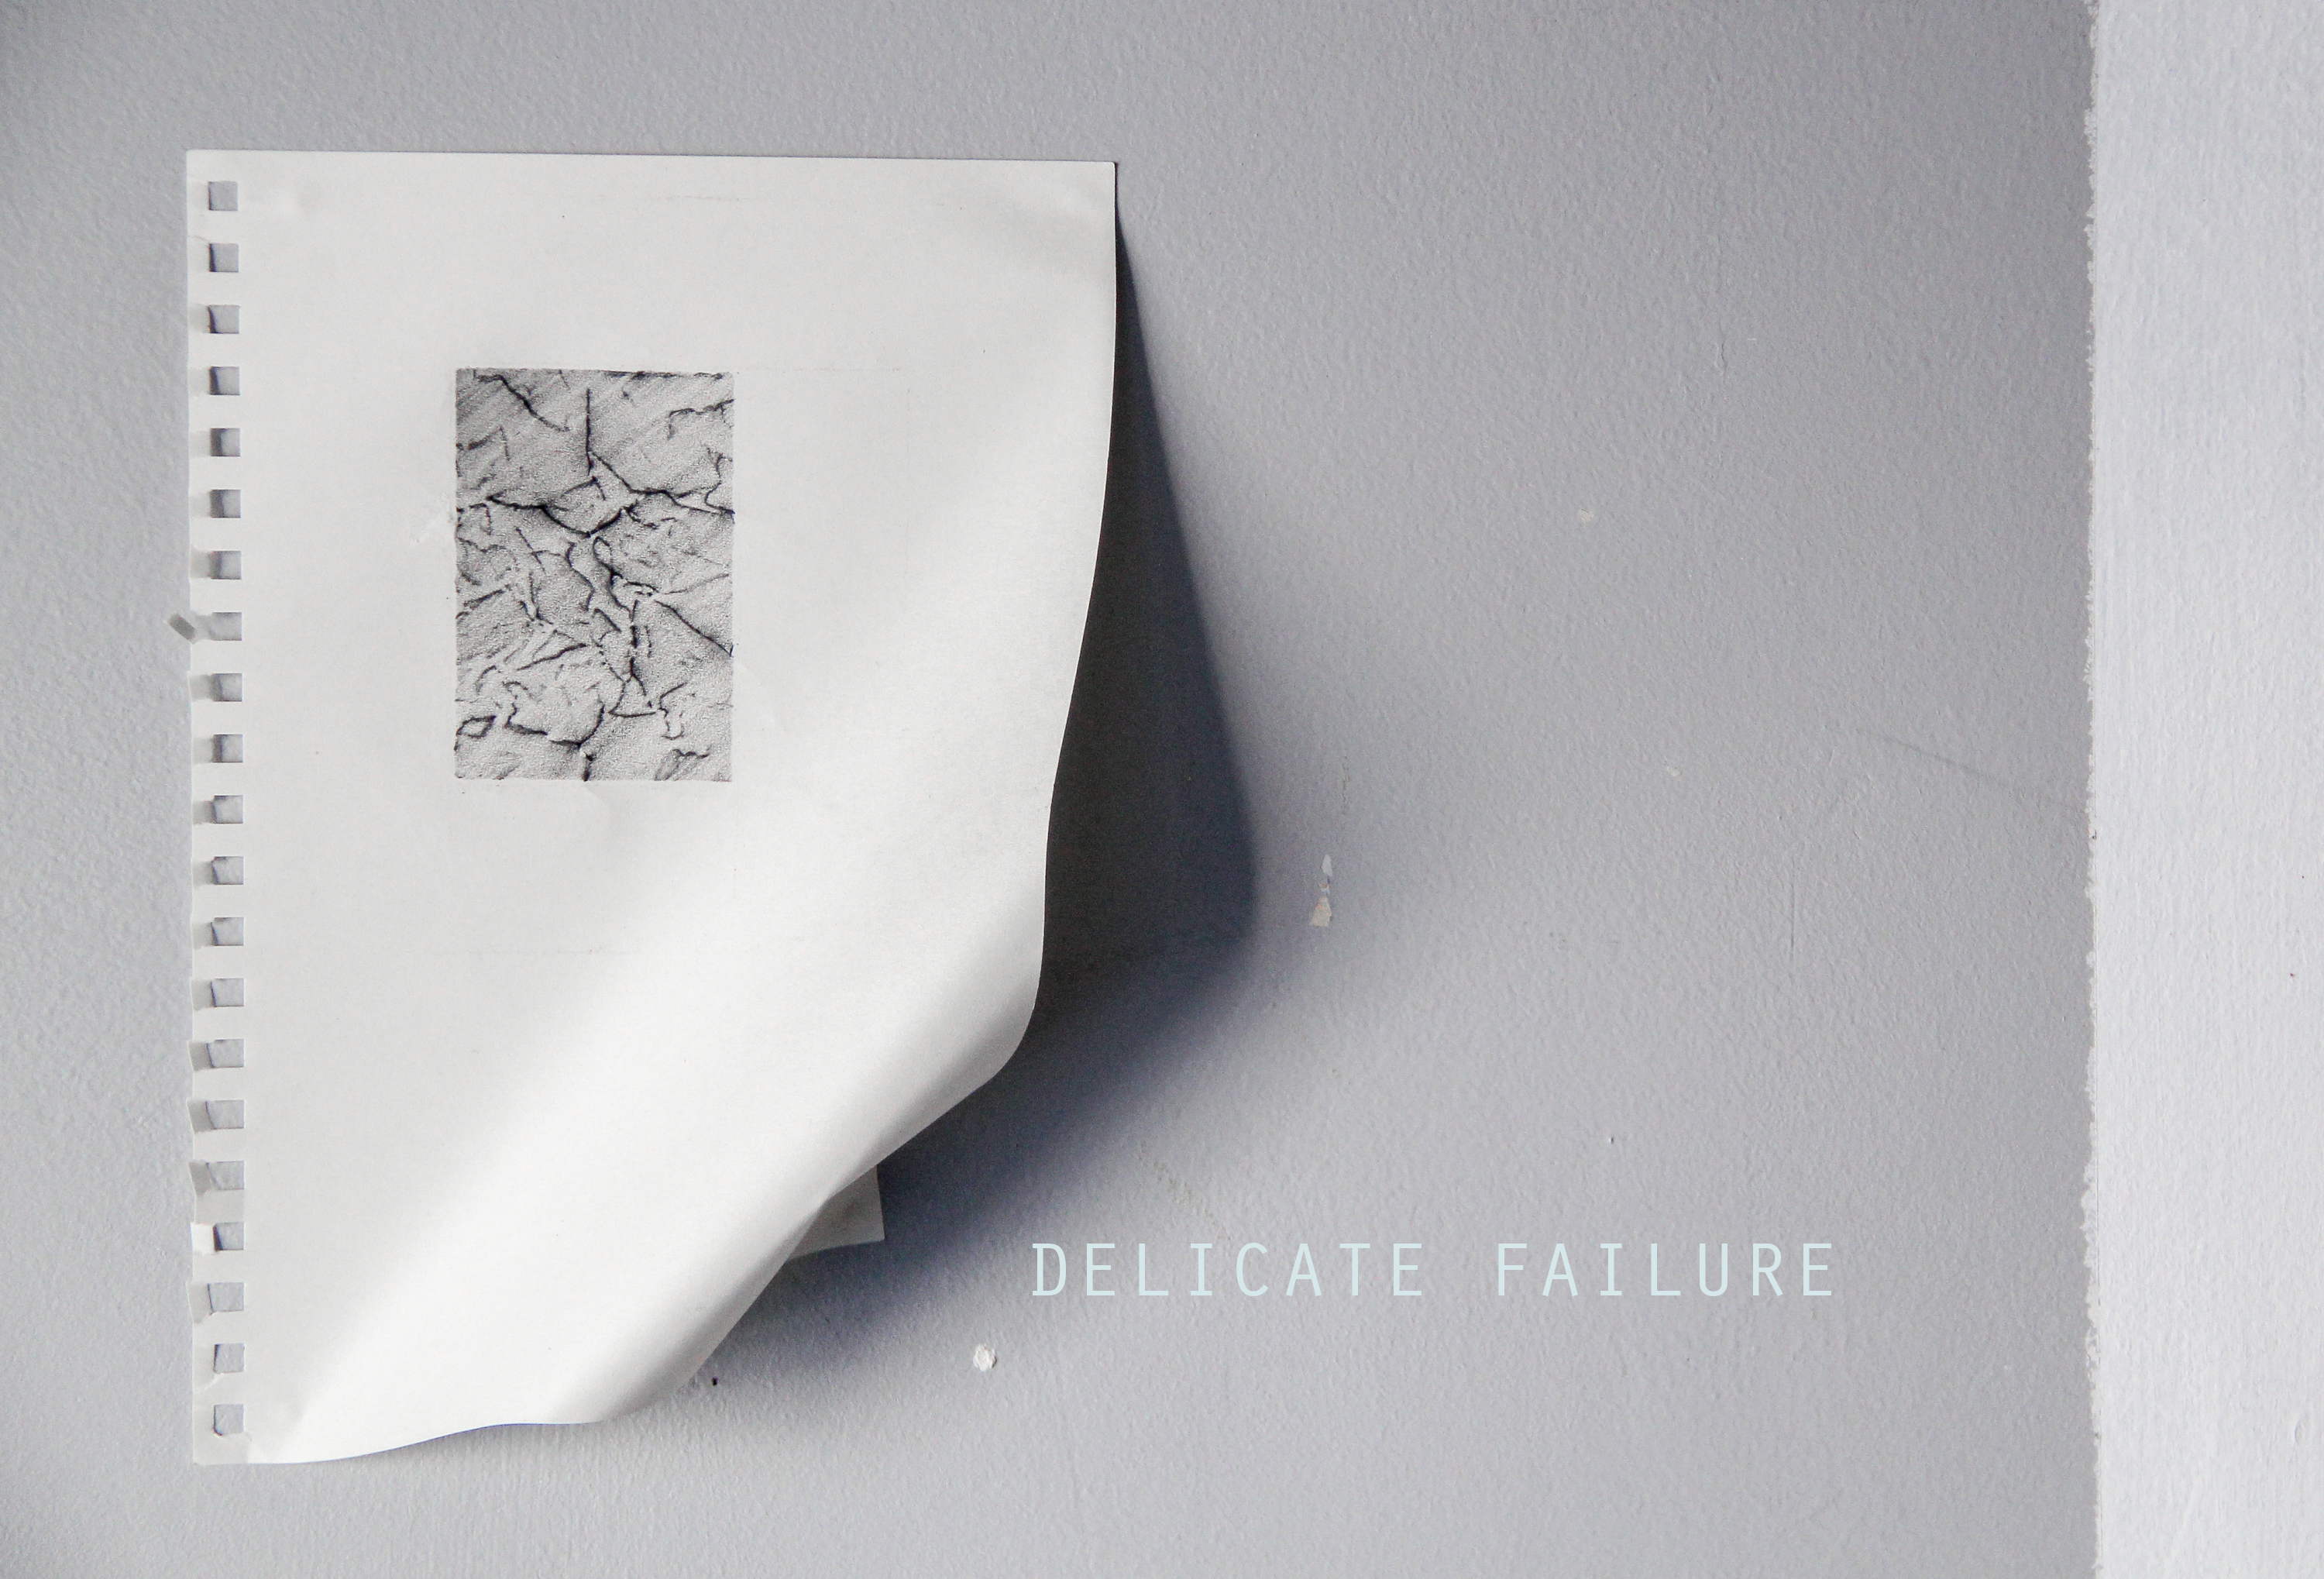 Delicate Failure: Open Studio Hours With Chen An An And Friends